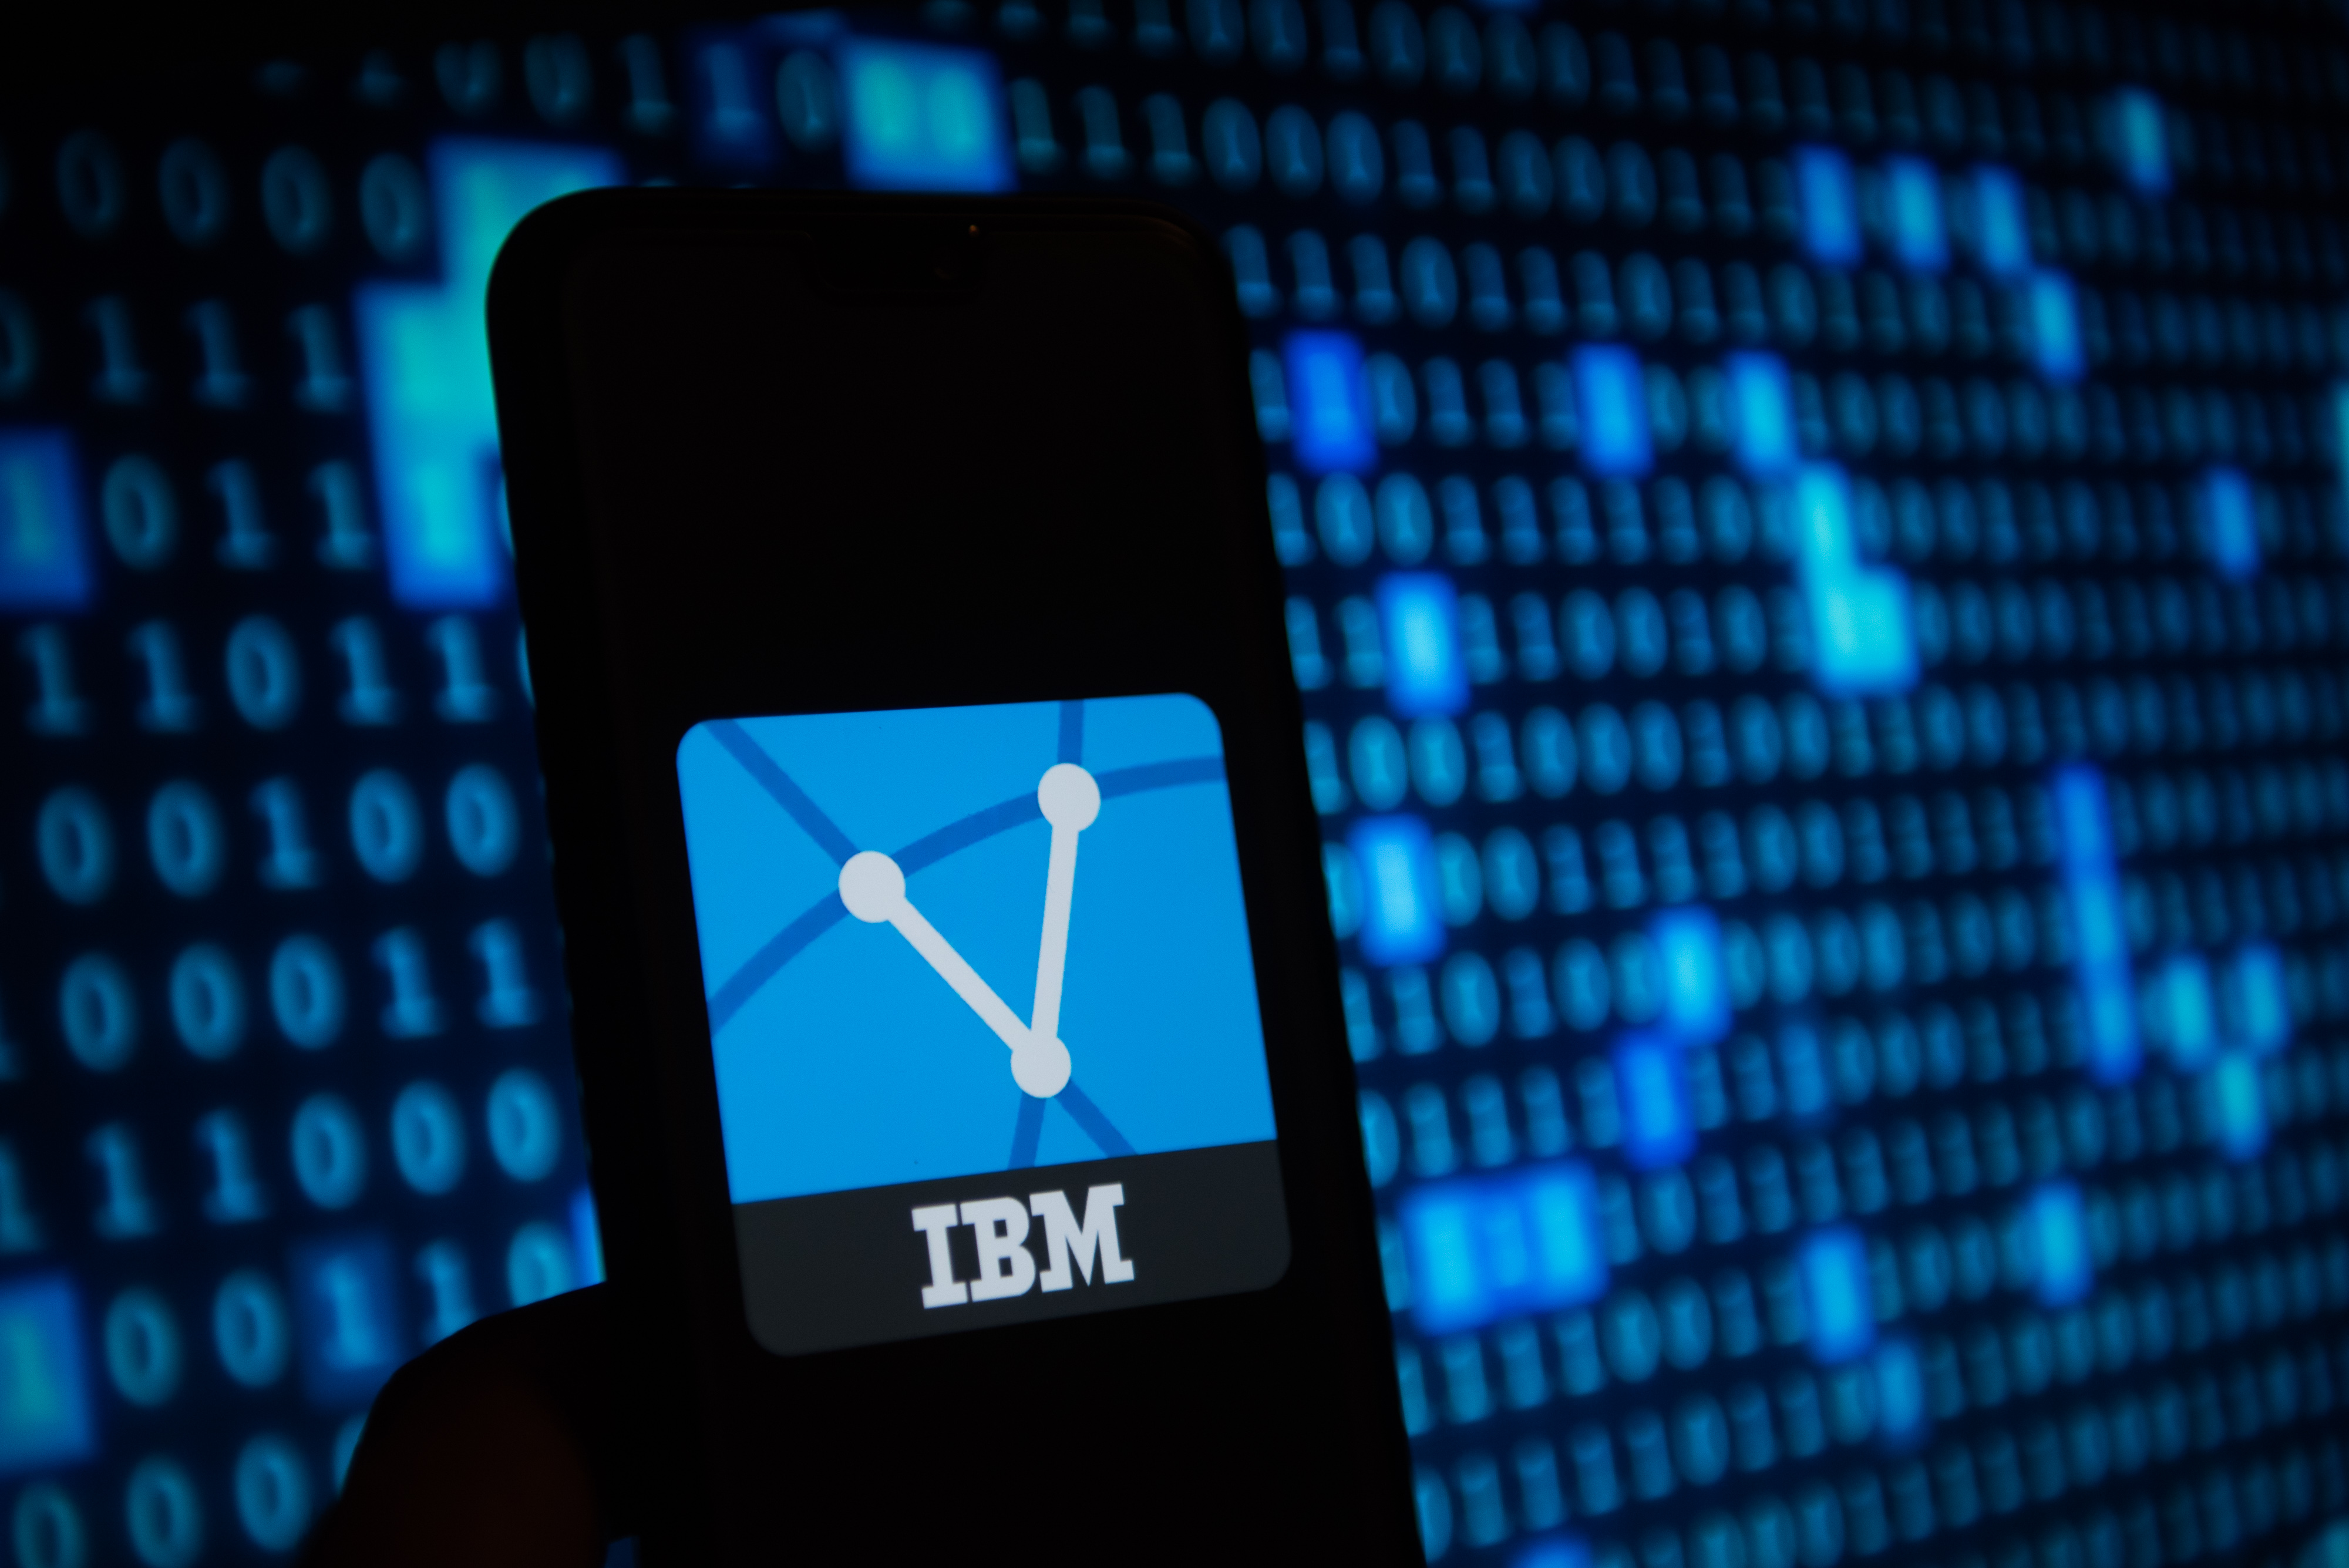 IBM  logo is seen on a mobile phone